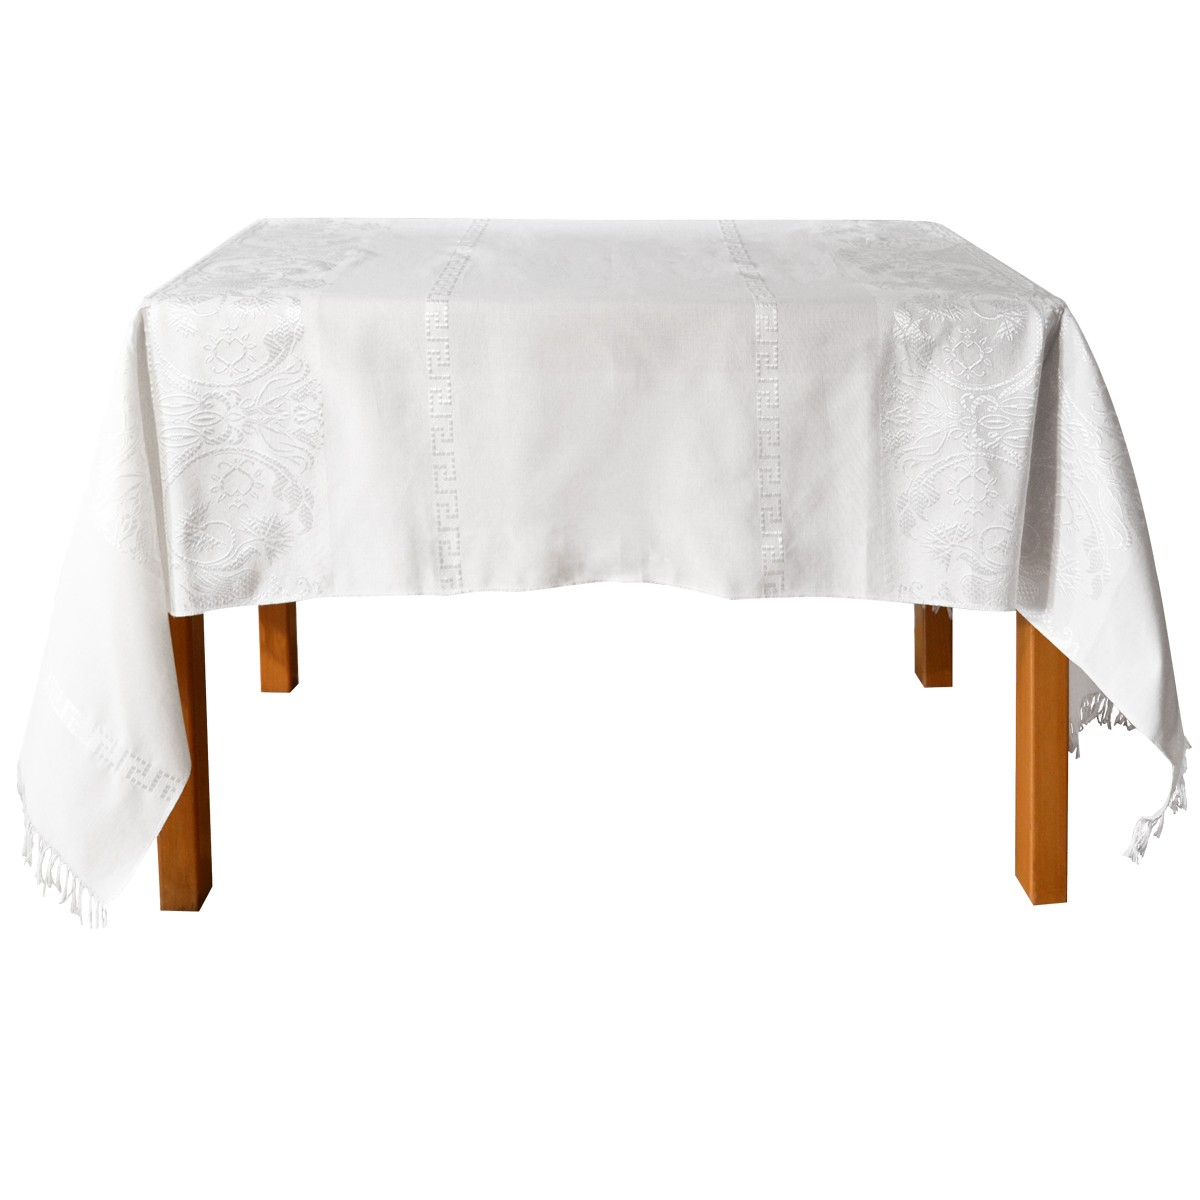 Eagle Jacquard Tablecloth, White, 150X220